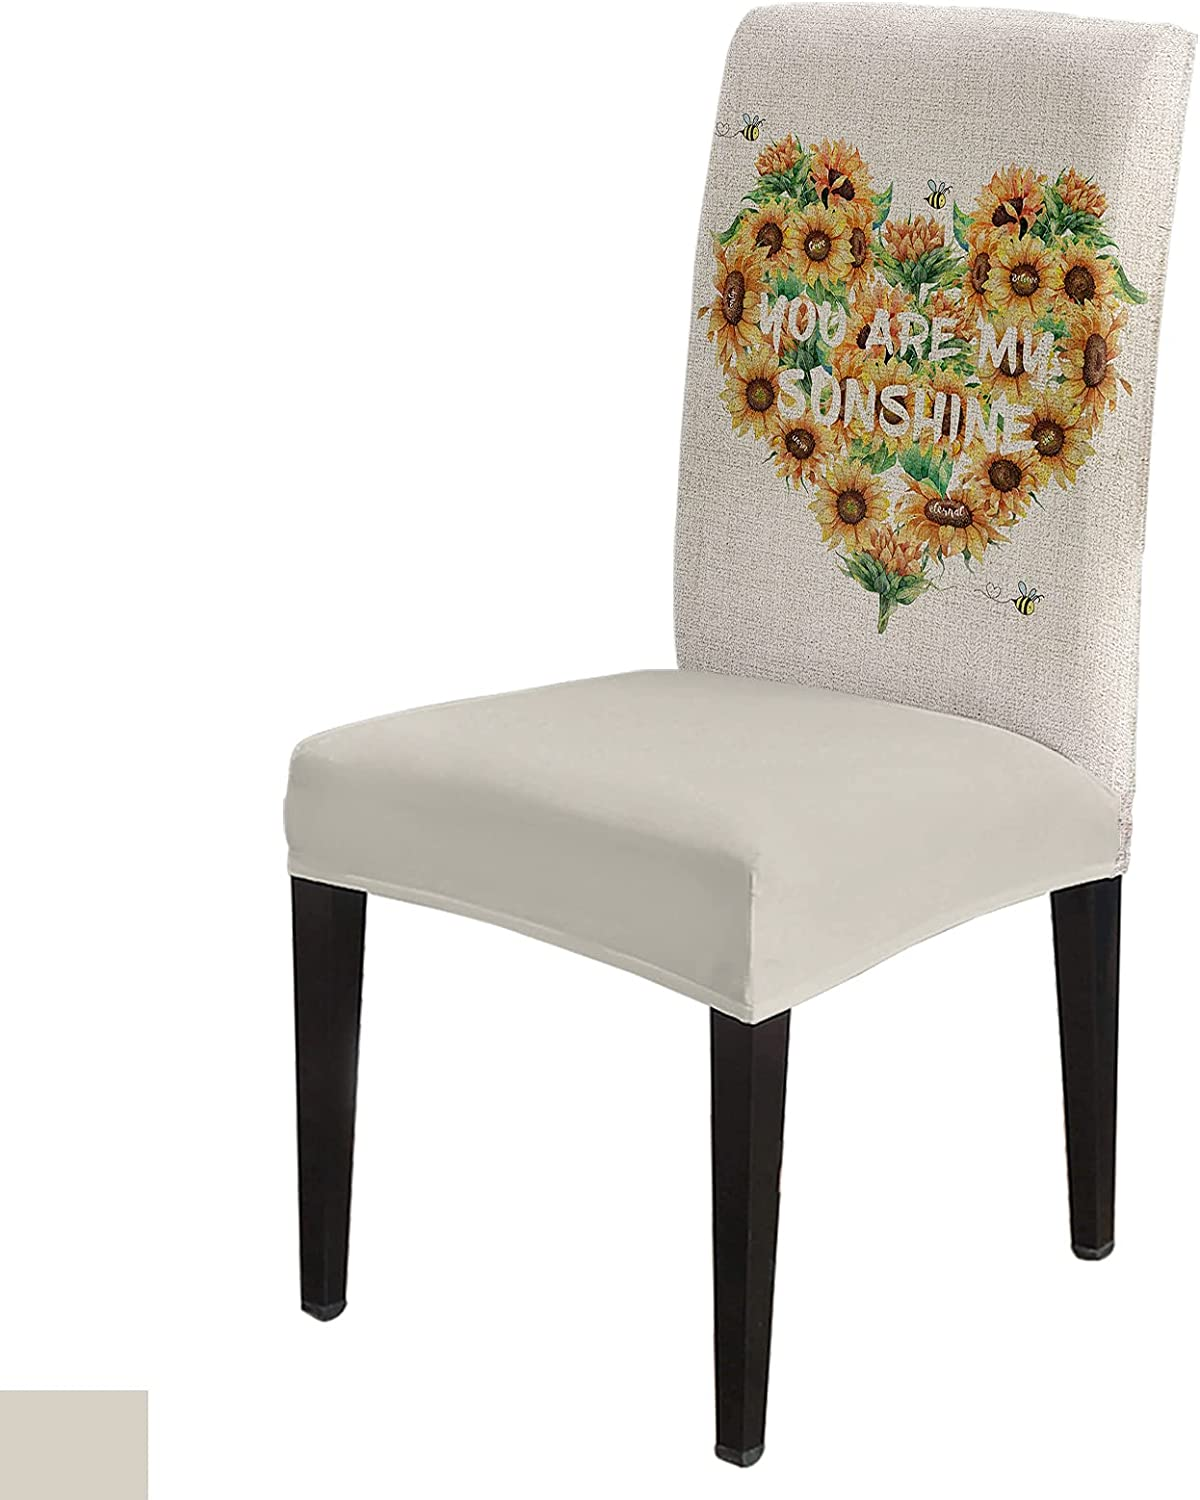 Vintage Sunflower Chair Slip Max 73% OFF Inexpensive Cover Set Covers 8 of Dining Seat